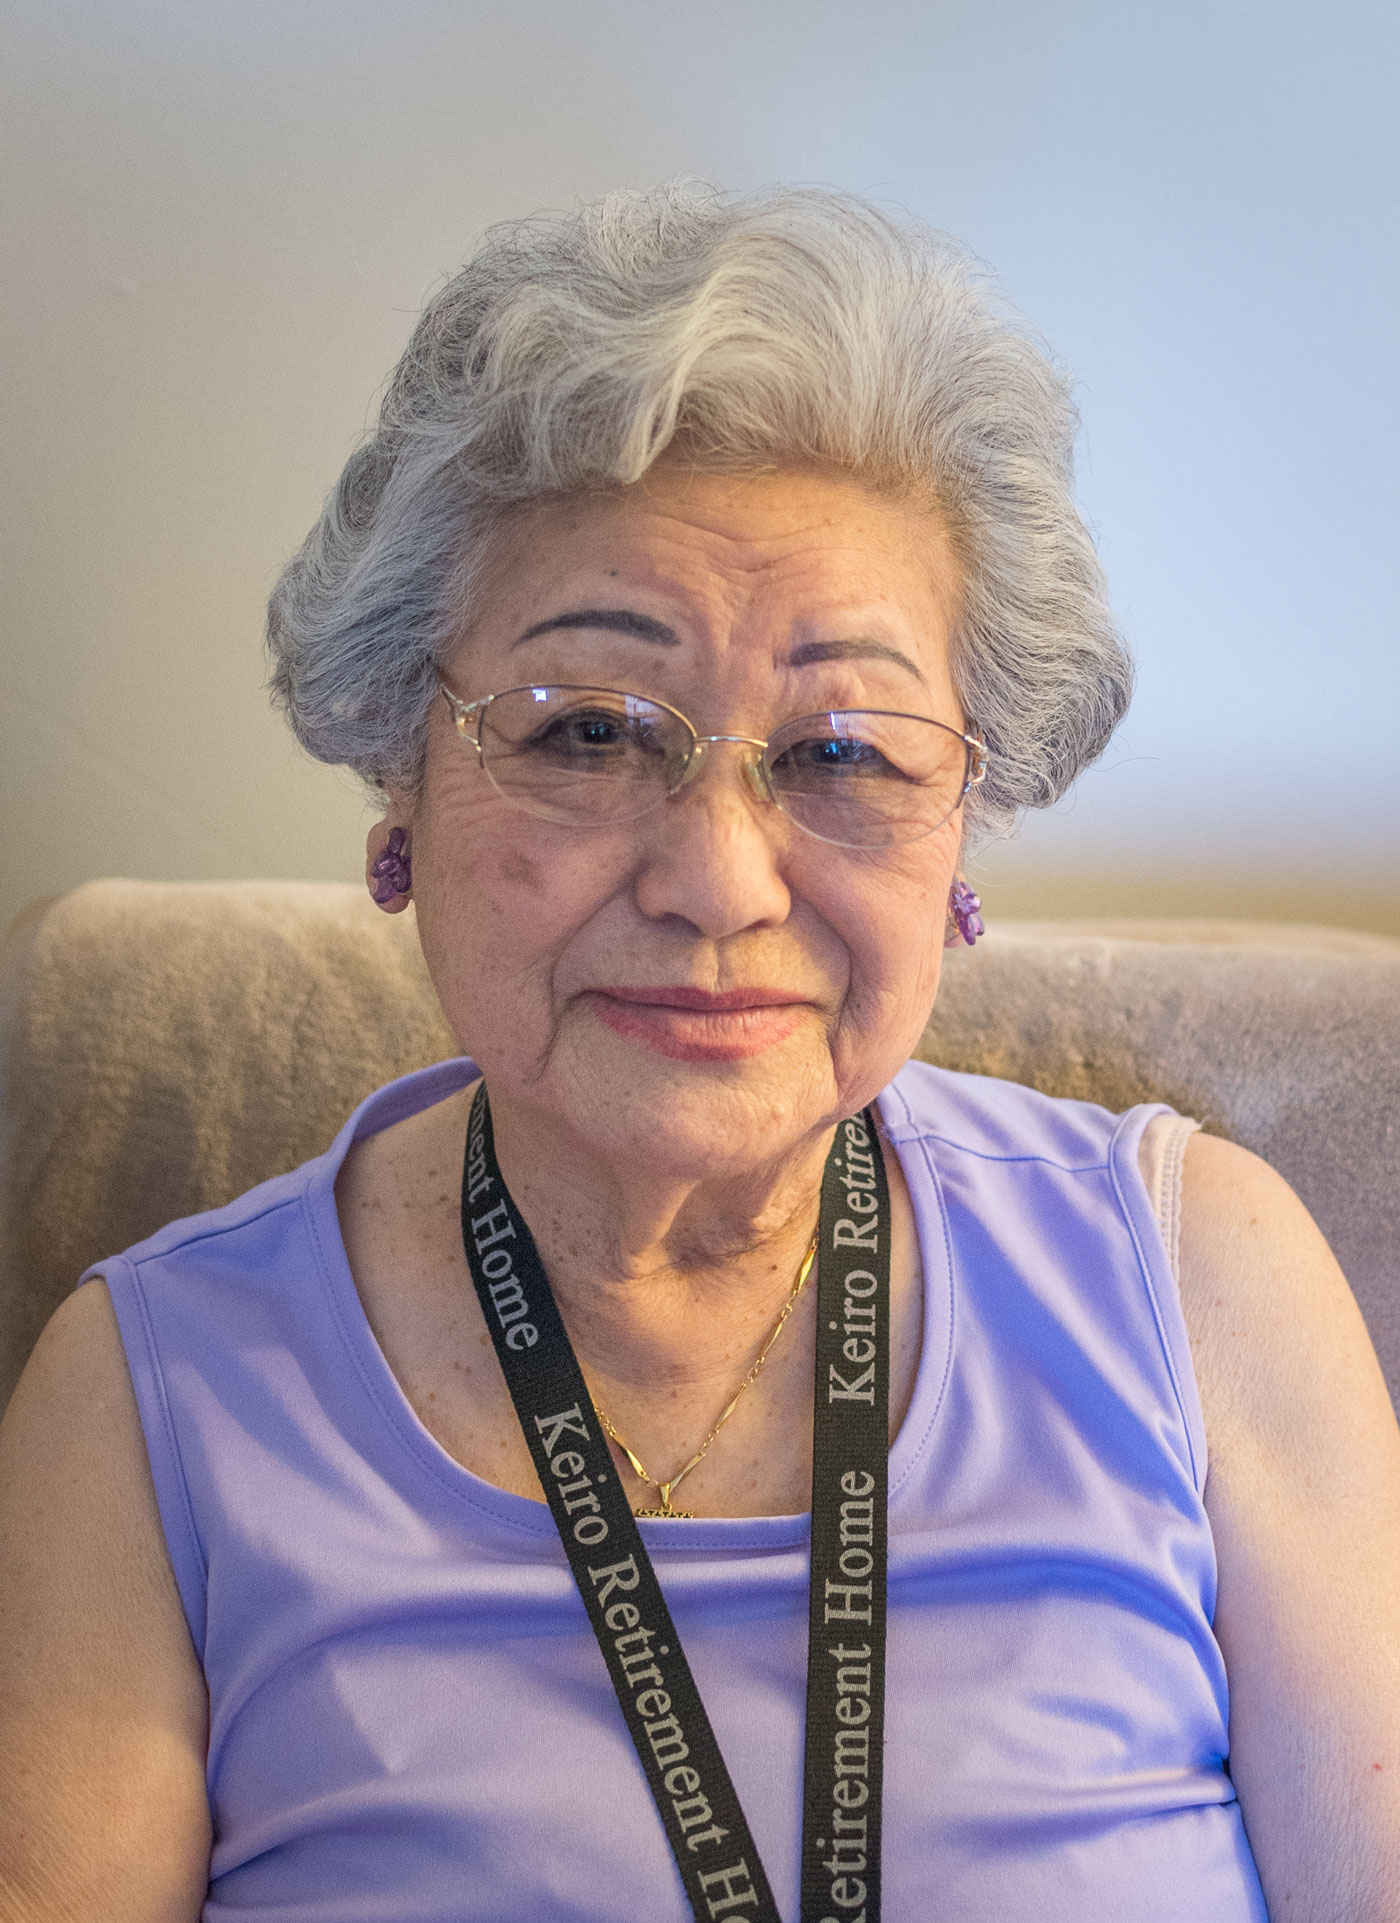 Cherry Ishimatsu - born March 25, 1925